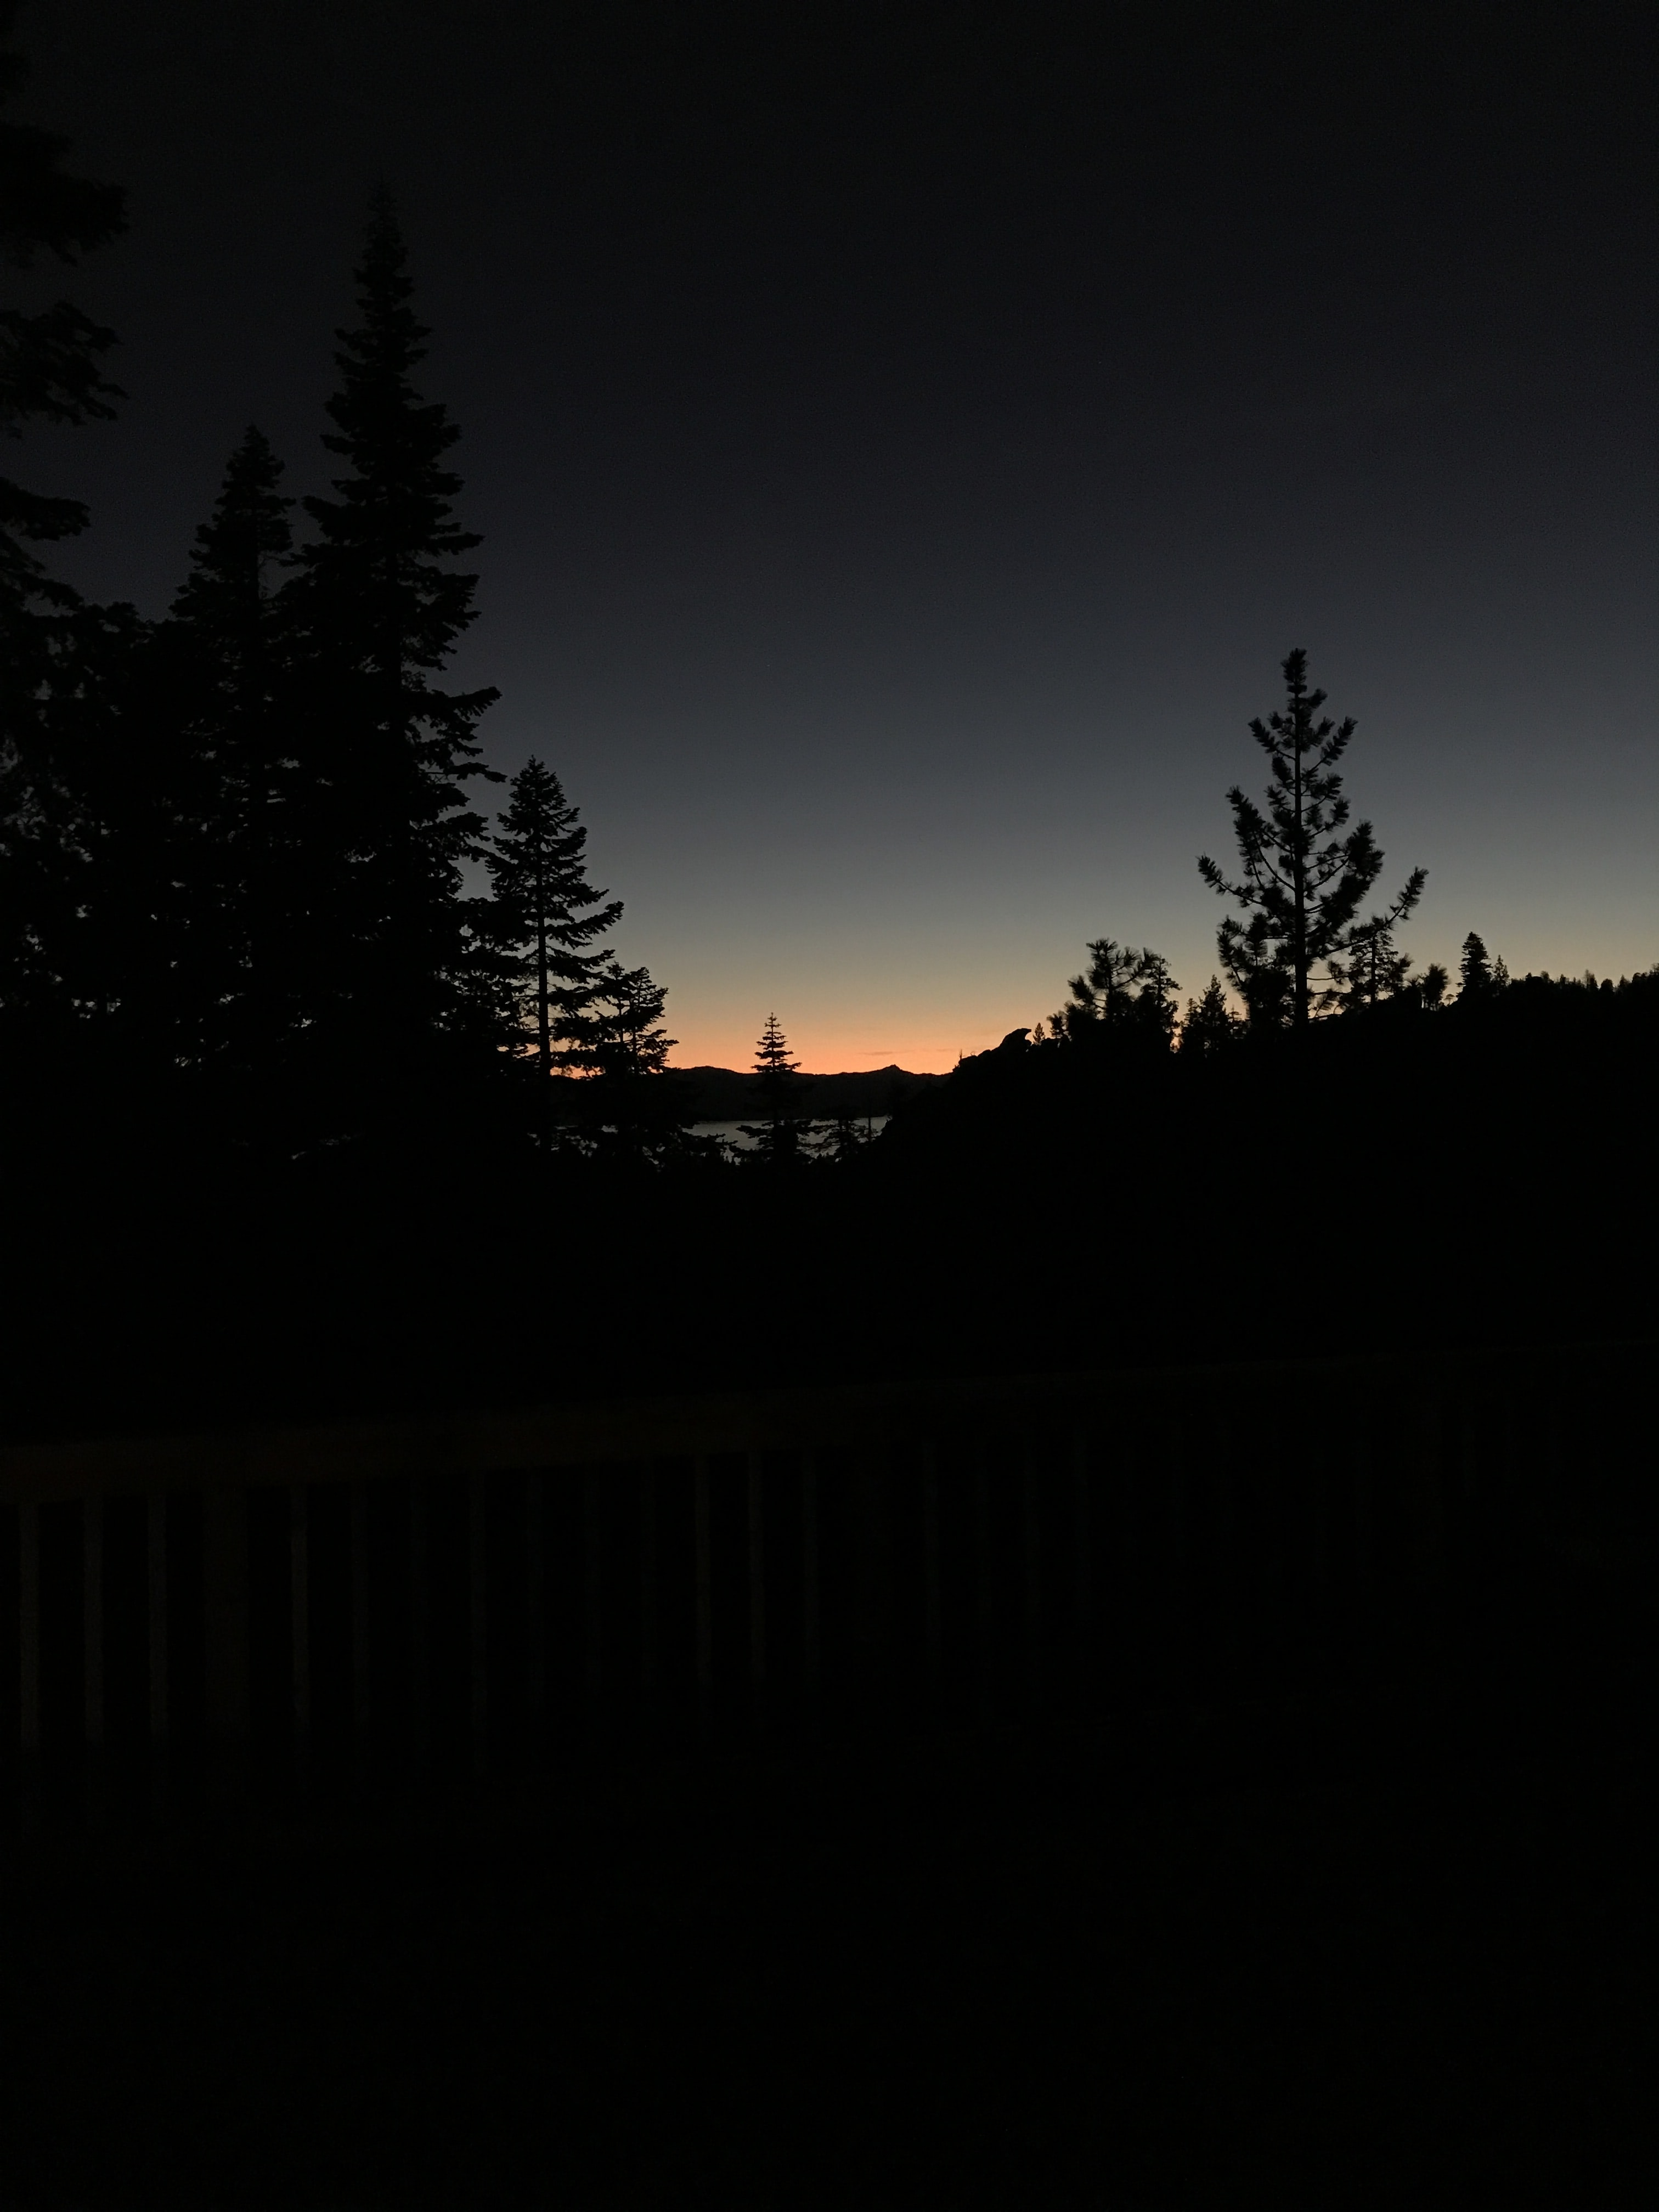 silhouette photography of pine tress